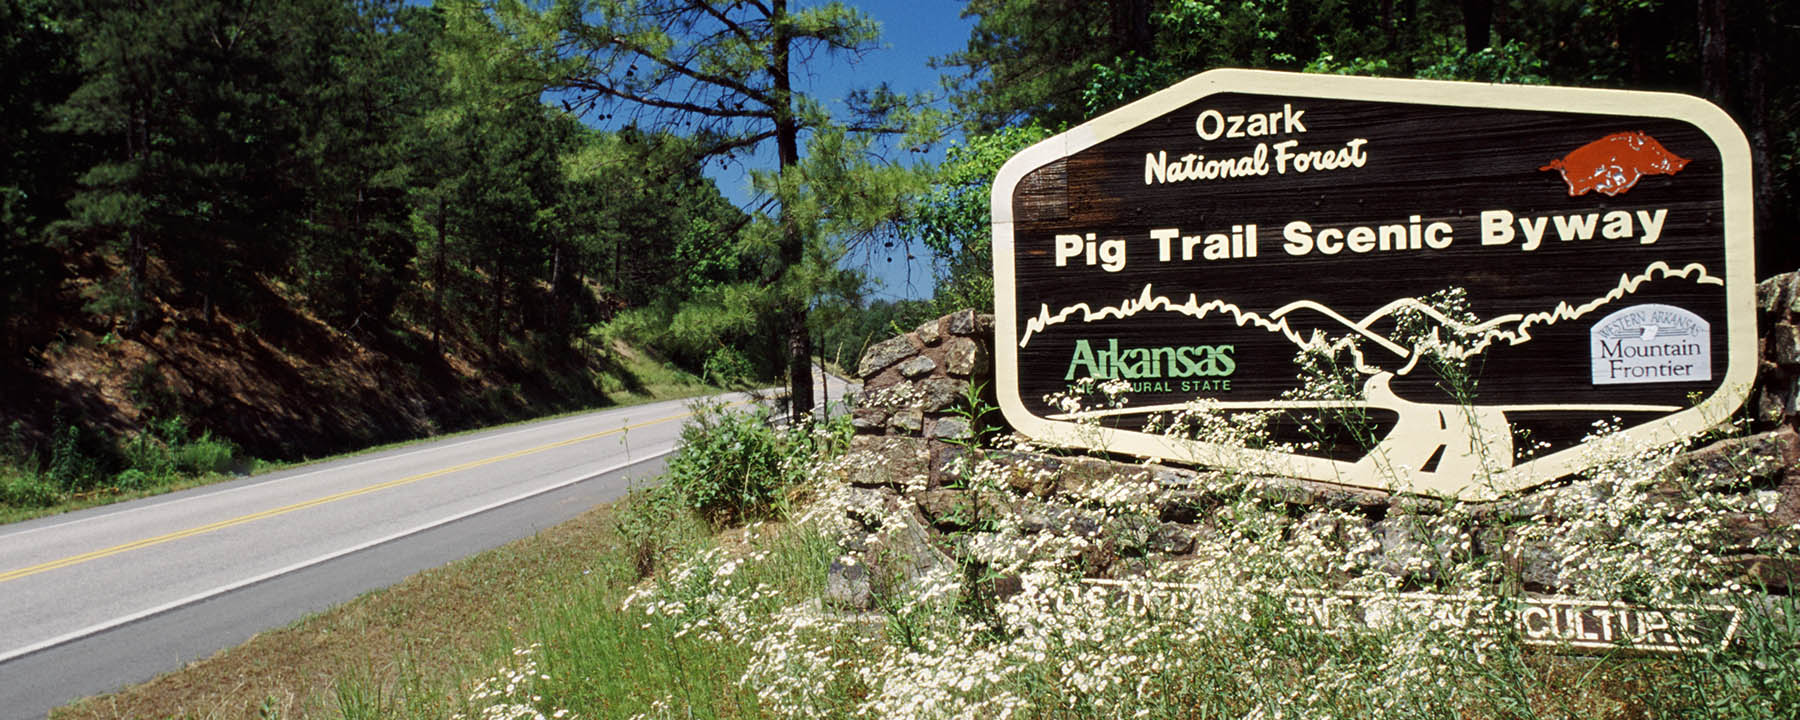 Arkansas-Good-Roads-Foundation-Slider-Image-3